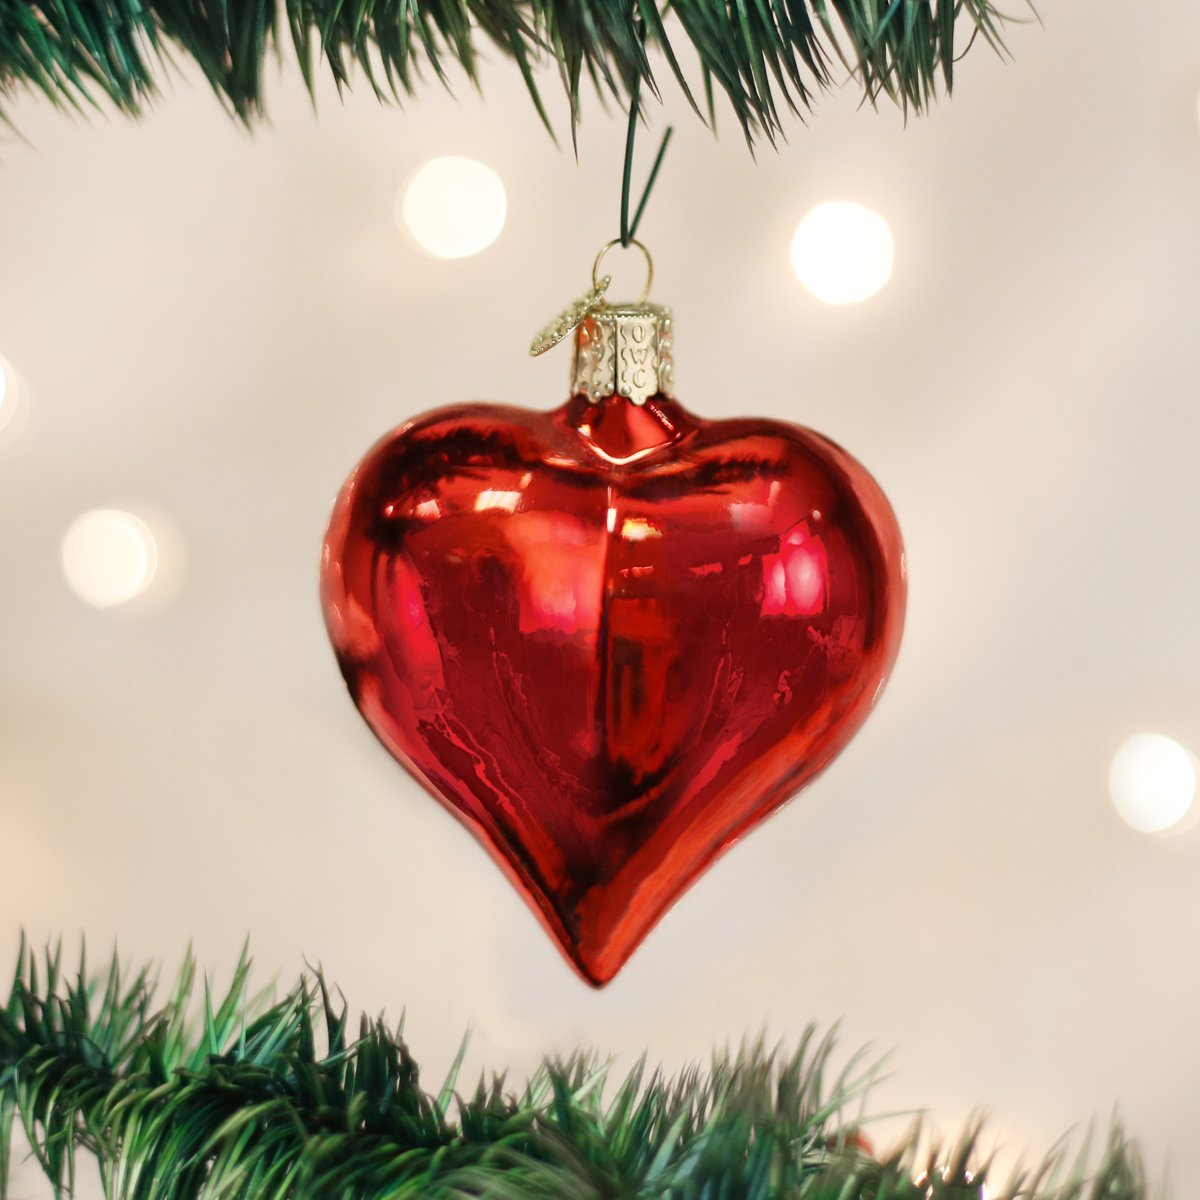 Large Shiny Red Heart Glass Blown Ornaments for Christmas Tree 30012 Old World Christmas Ornaments